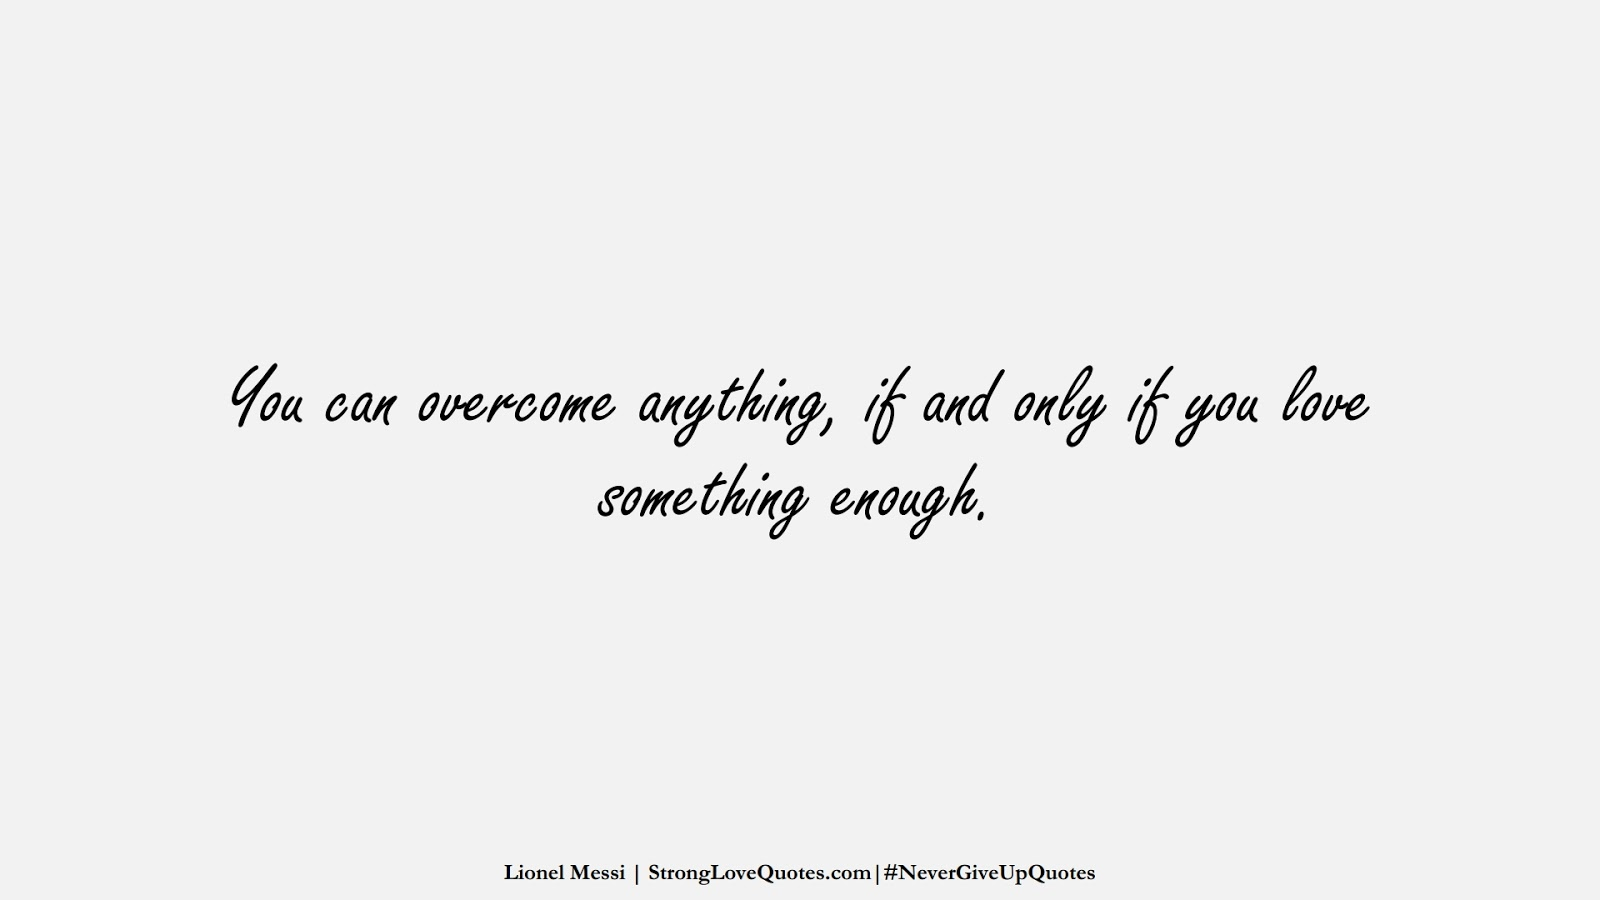 You can overcome anything, if and only if you love something enough. (Lionel Messi);  #NeverGiveUpQuotes